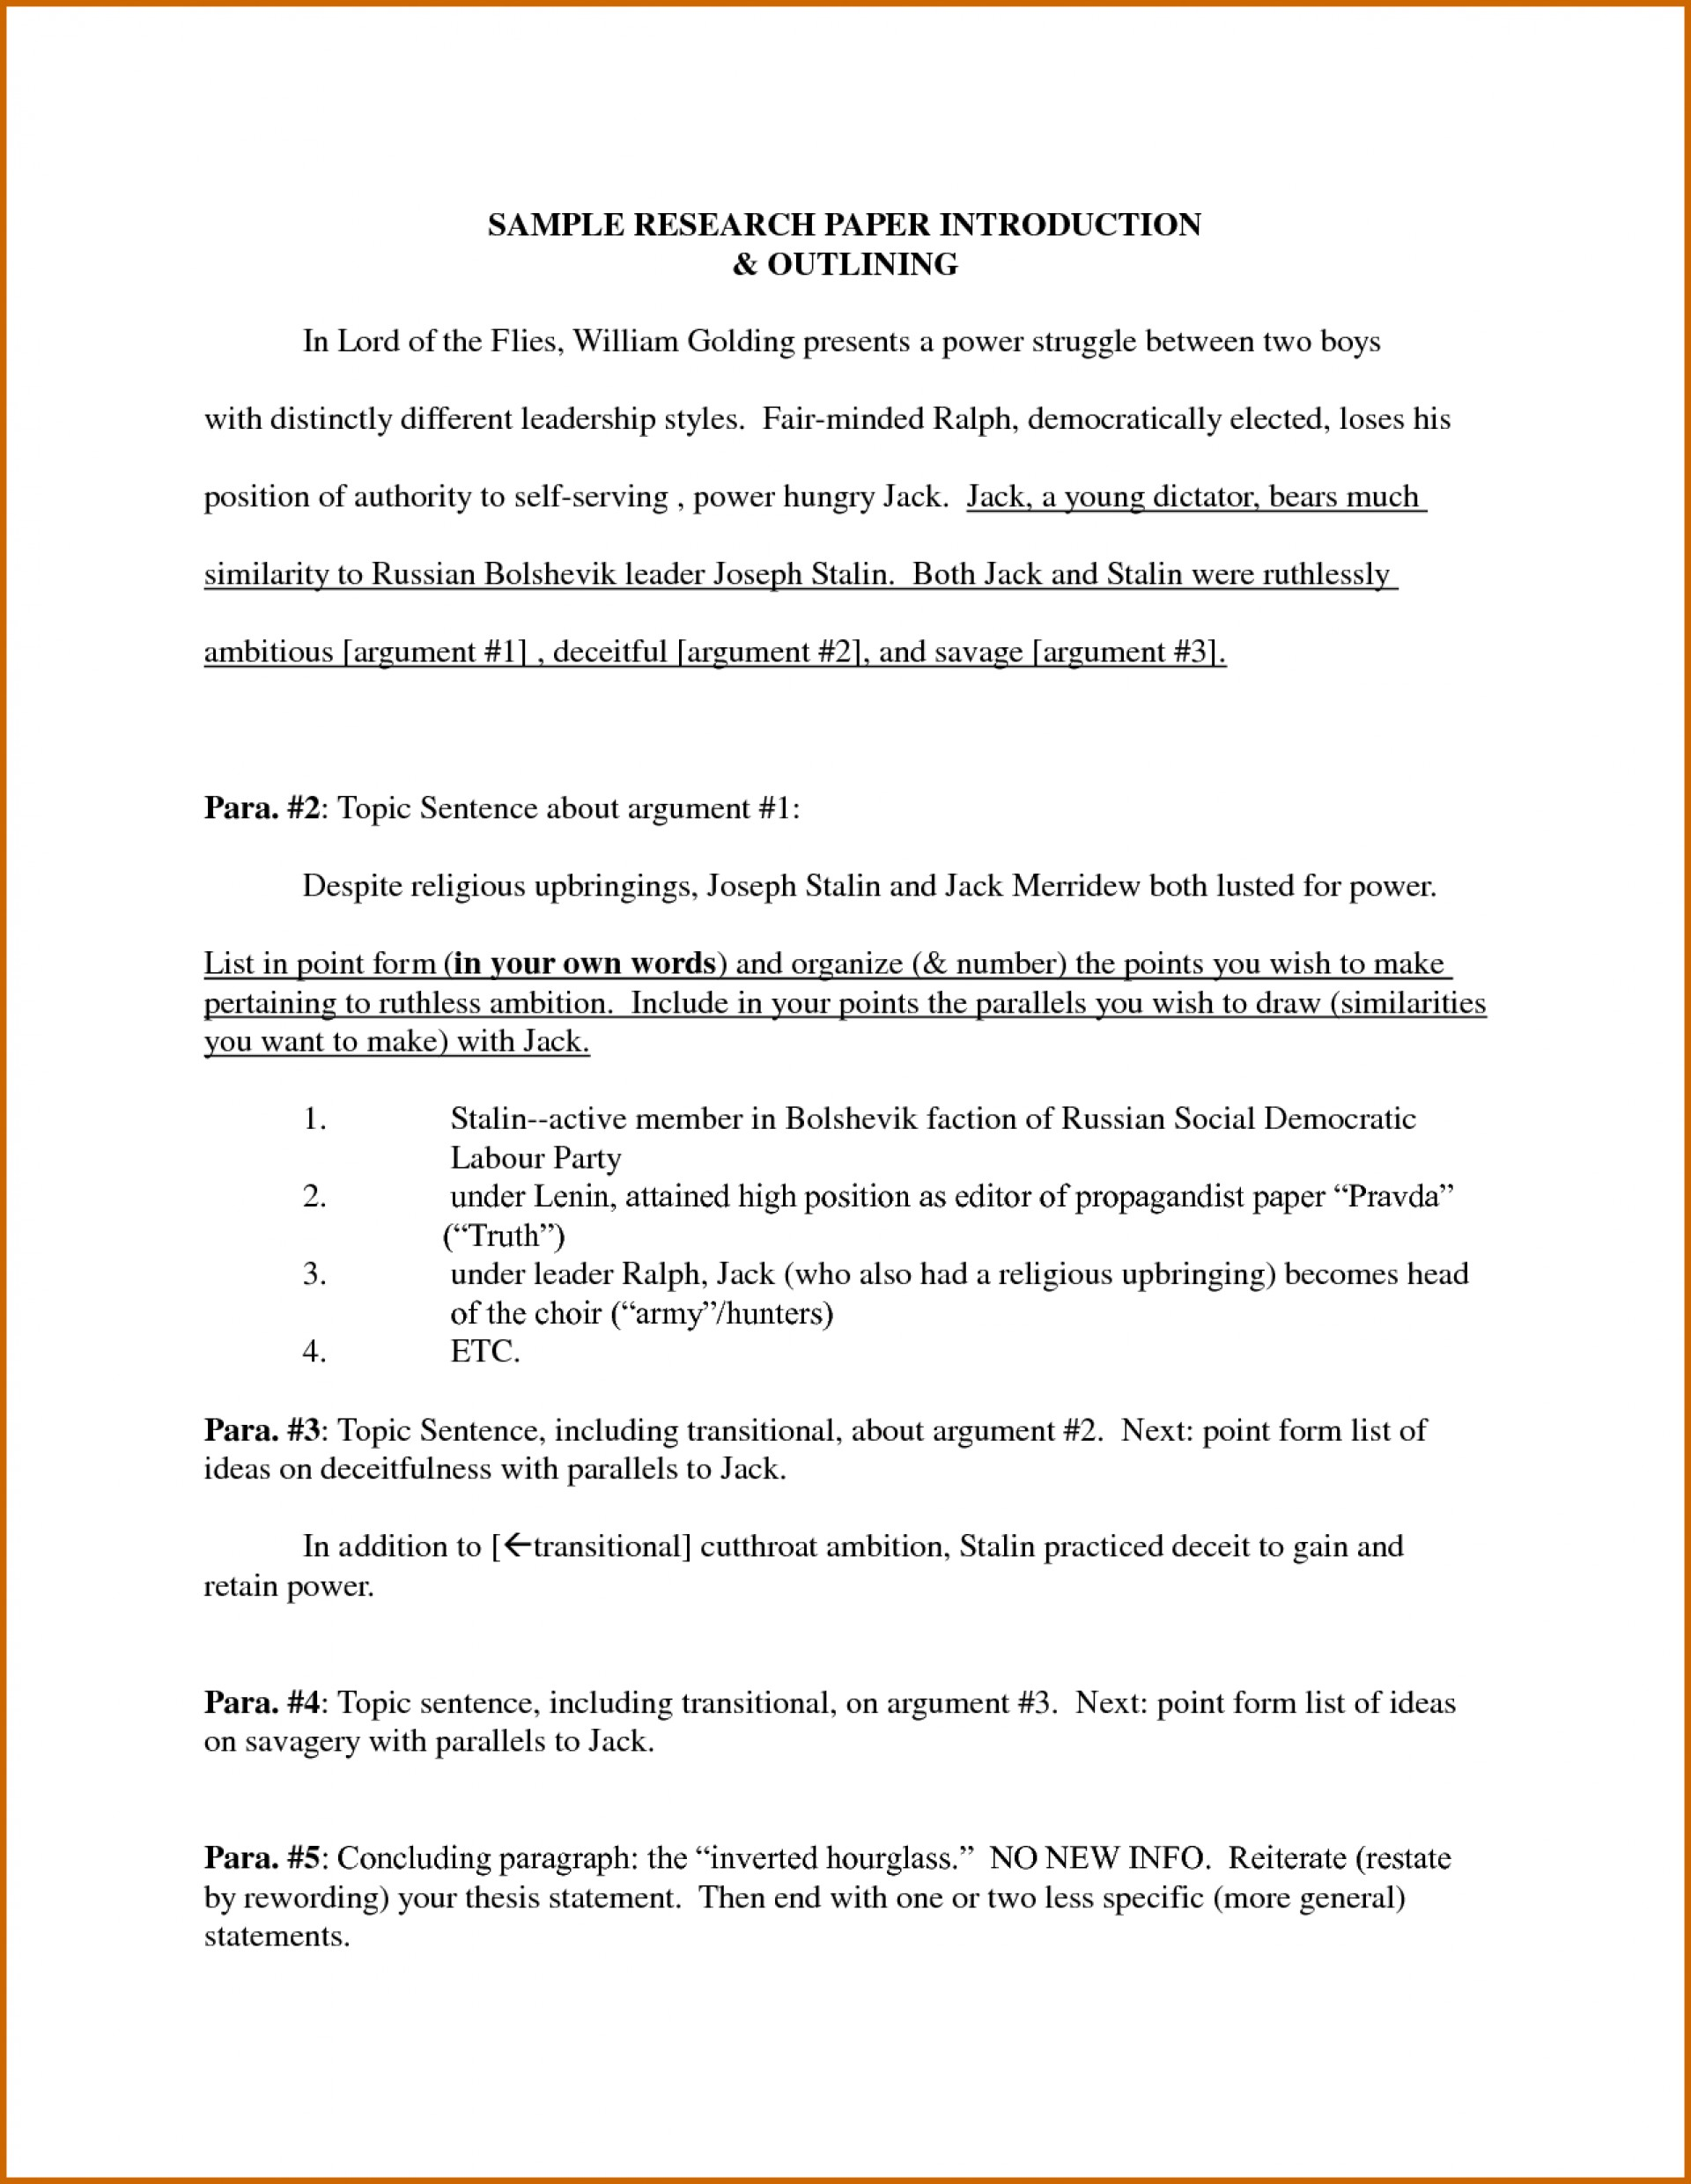 005 Research Paper Introduction For Term Sample How To End Magnificent A 1920